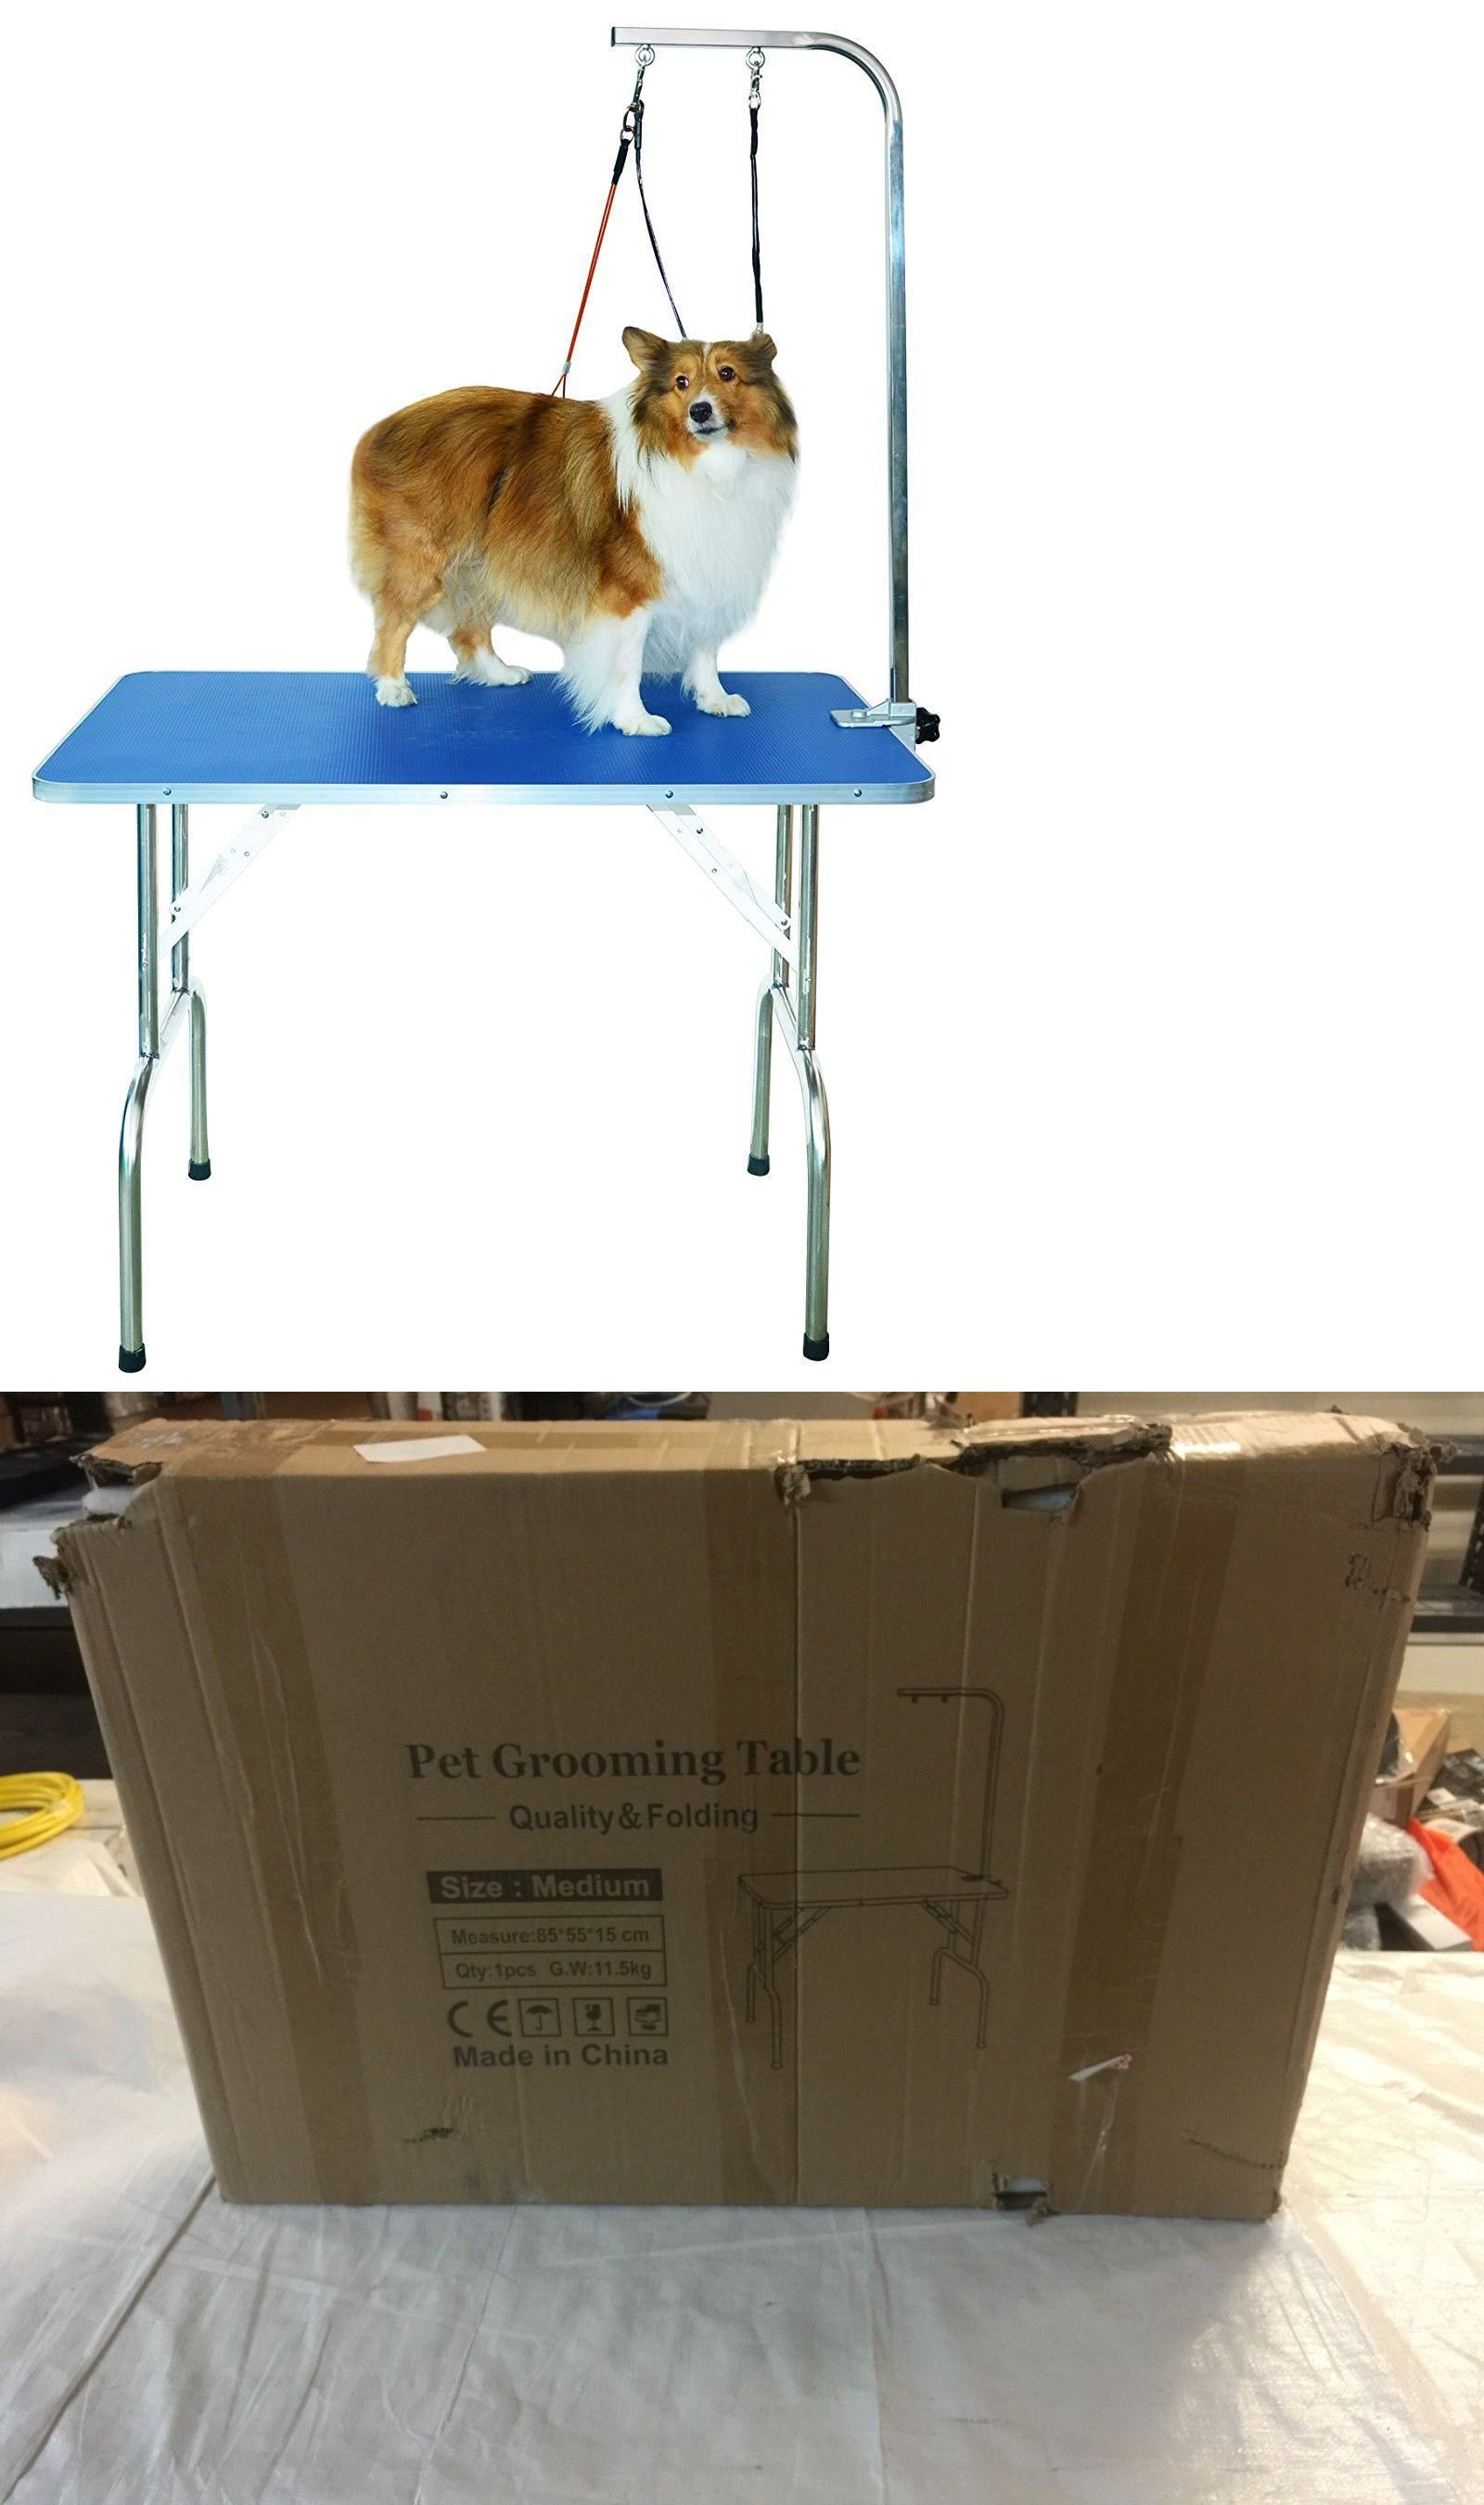 Grooming Tables 146241 Shelandy Professional Pet Grooming Table With Double Leashes And Clamp Buy It Now Only 64 99 On Ebay Pet Grooming Pets Grooming